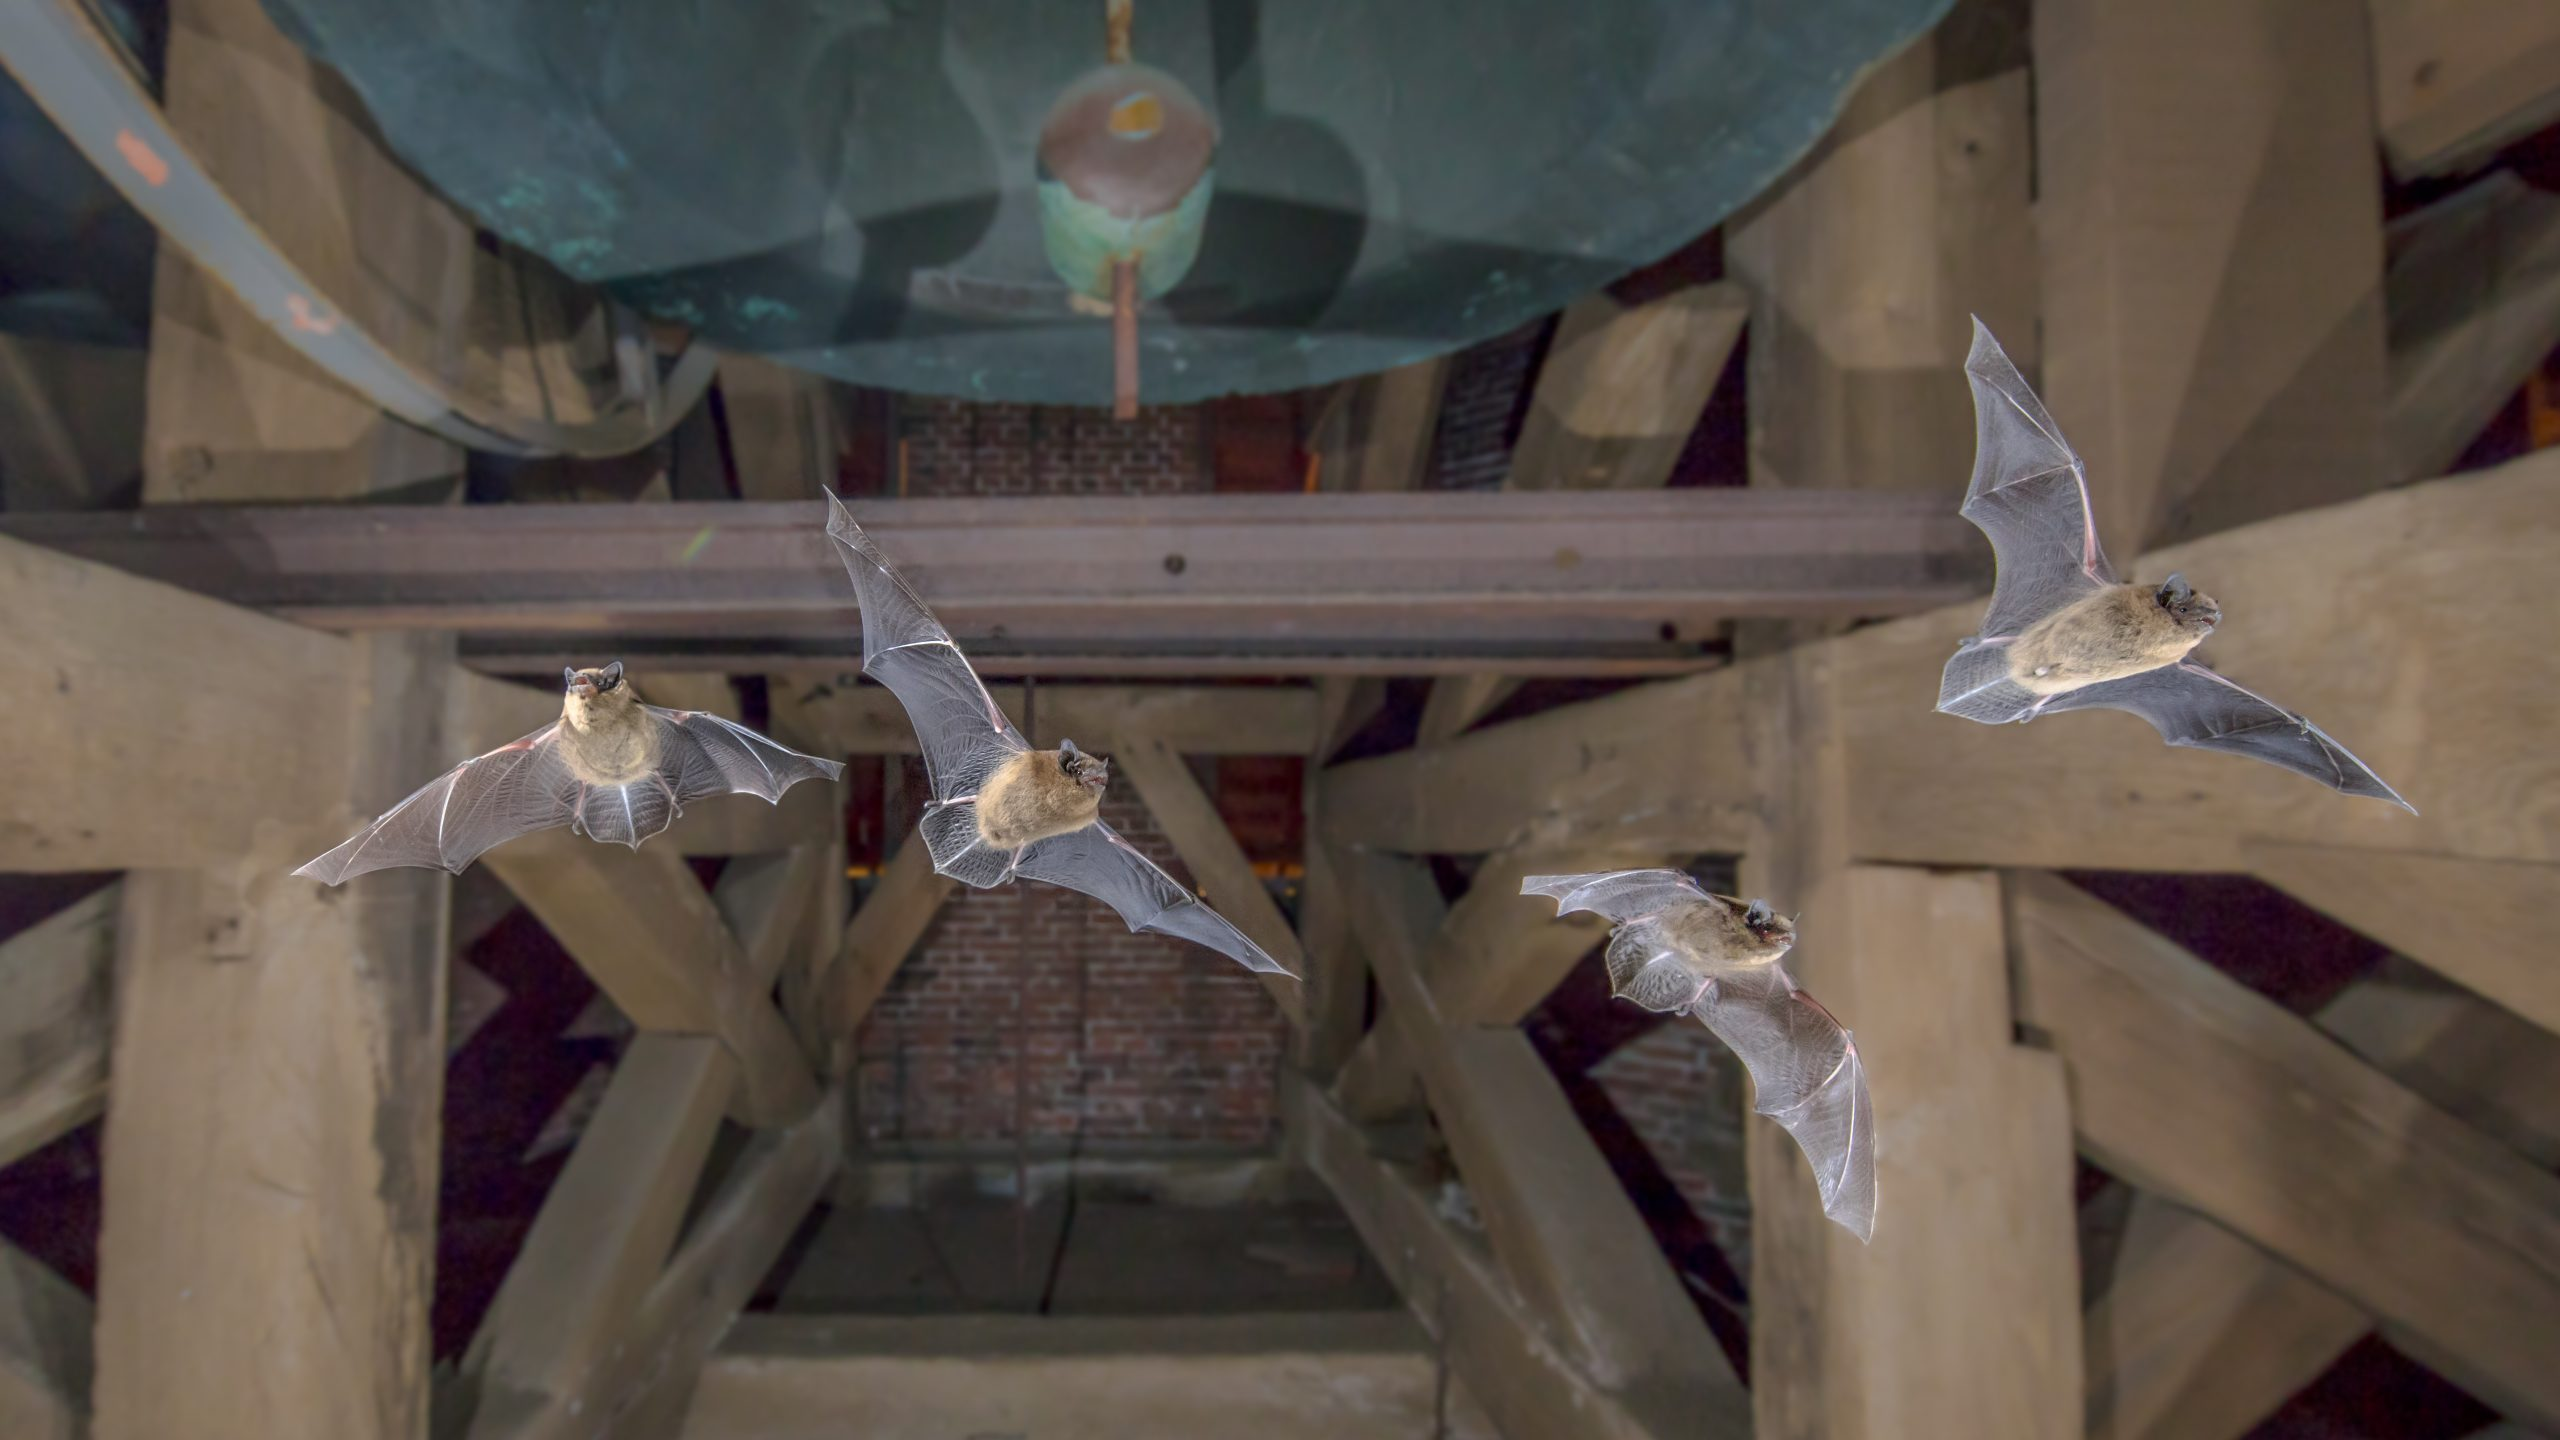 Image of four flying bats in orlando attic